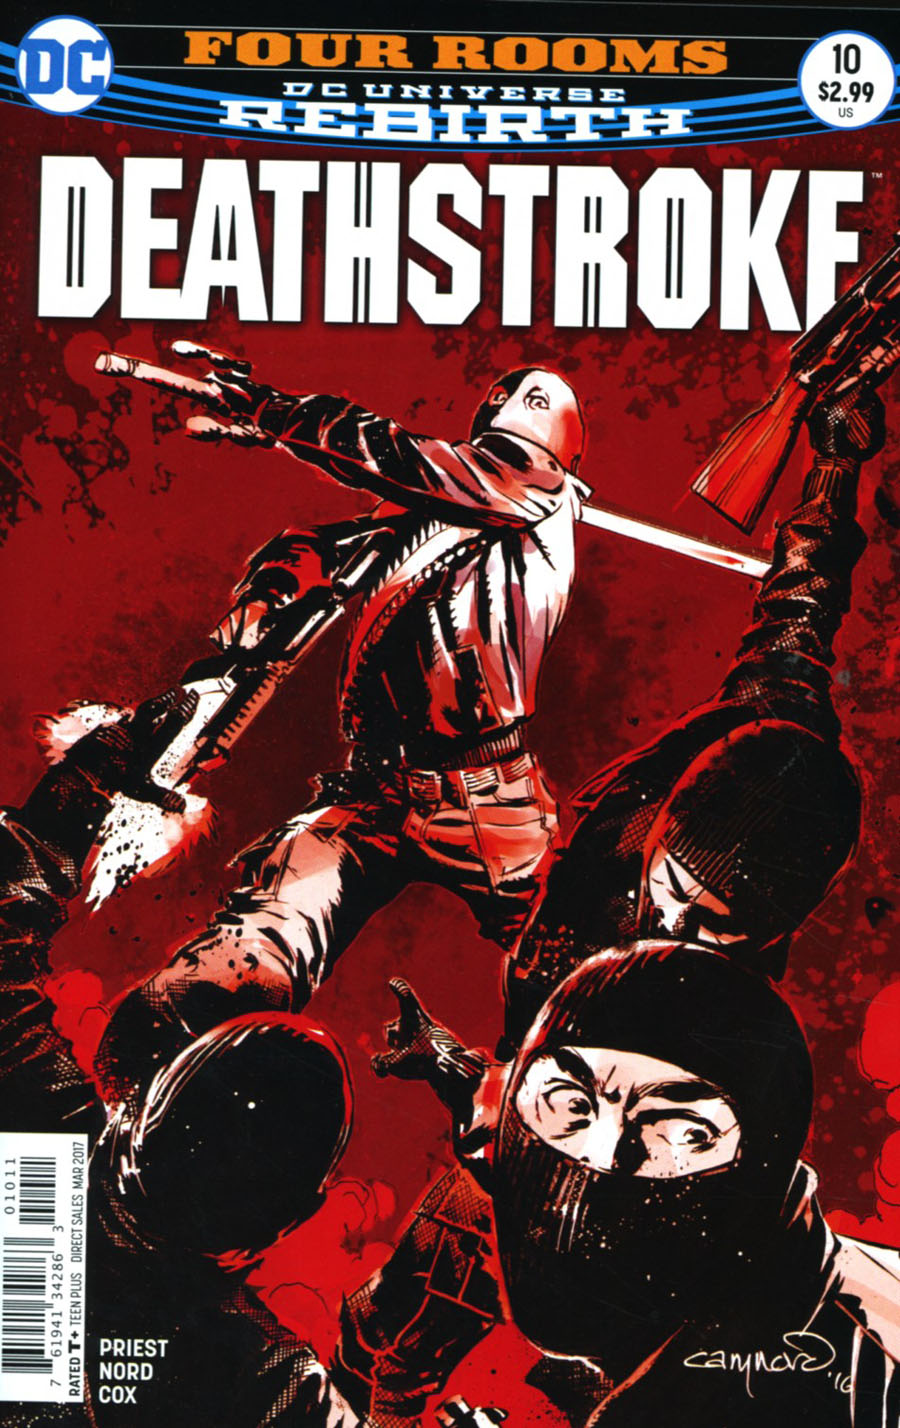 Deathstroke Vol 4 #10 Cover A Regular Cary Nord Cover